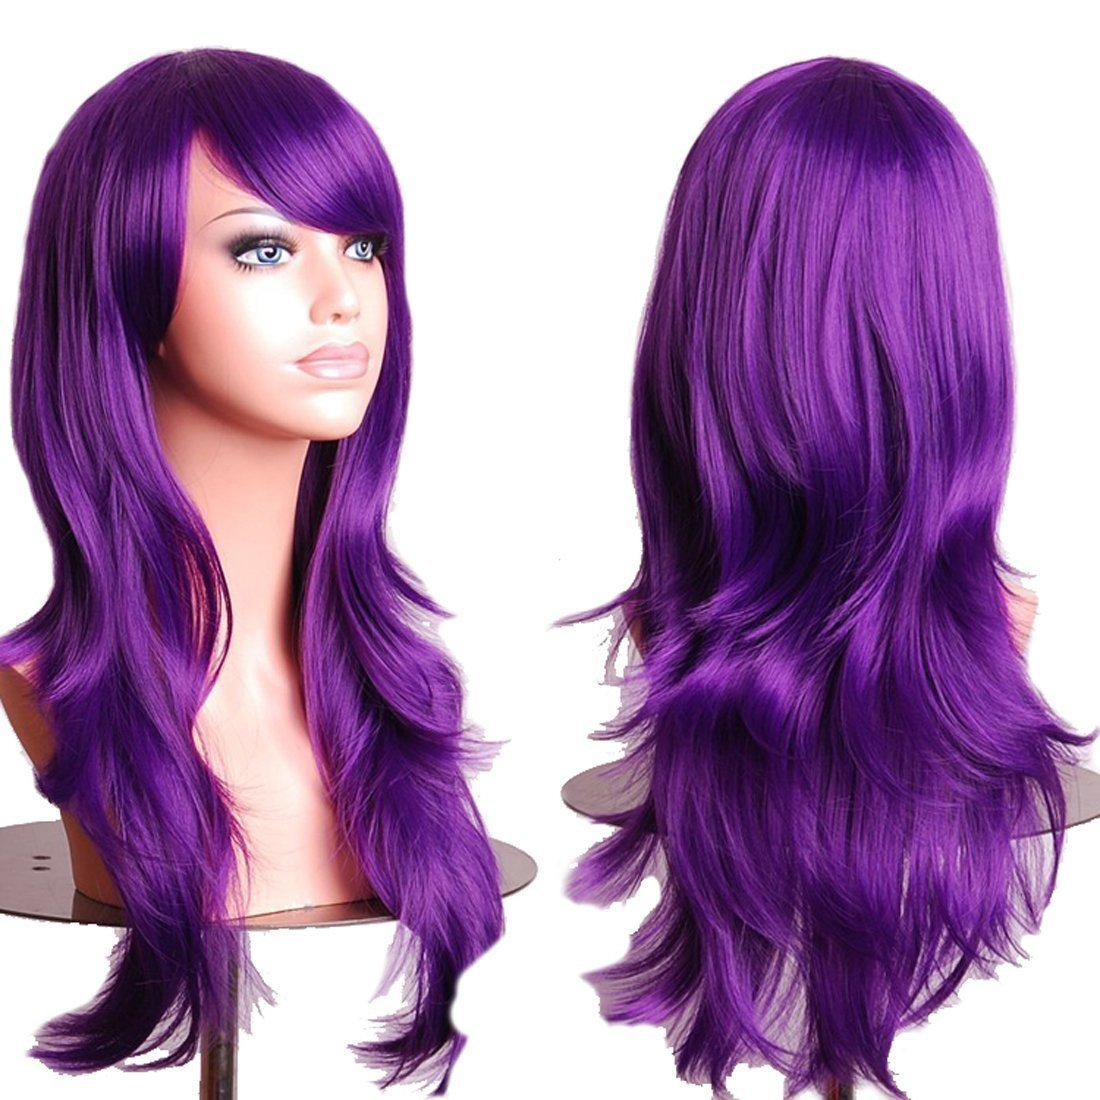 Amazon Com Purple Big Wavy Cosplay Wig Outop 28 Heat Resistant Cosplay Full Hair Wig Party Costume Wig For Parties Beauty